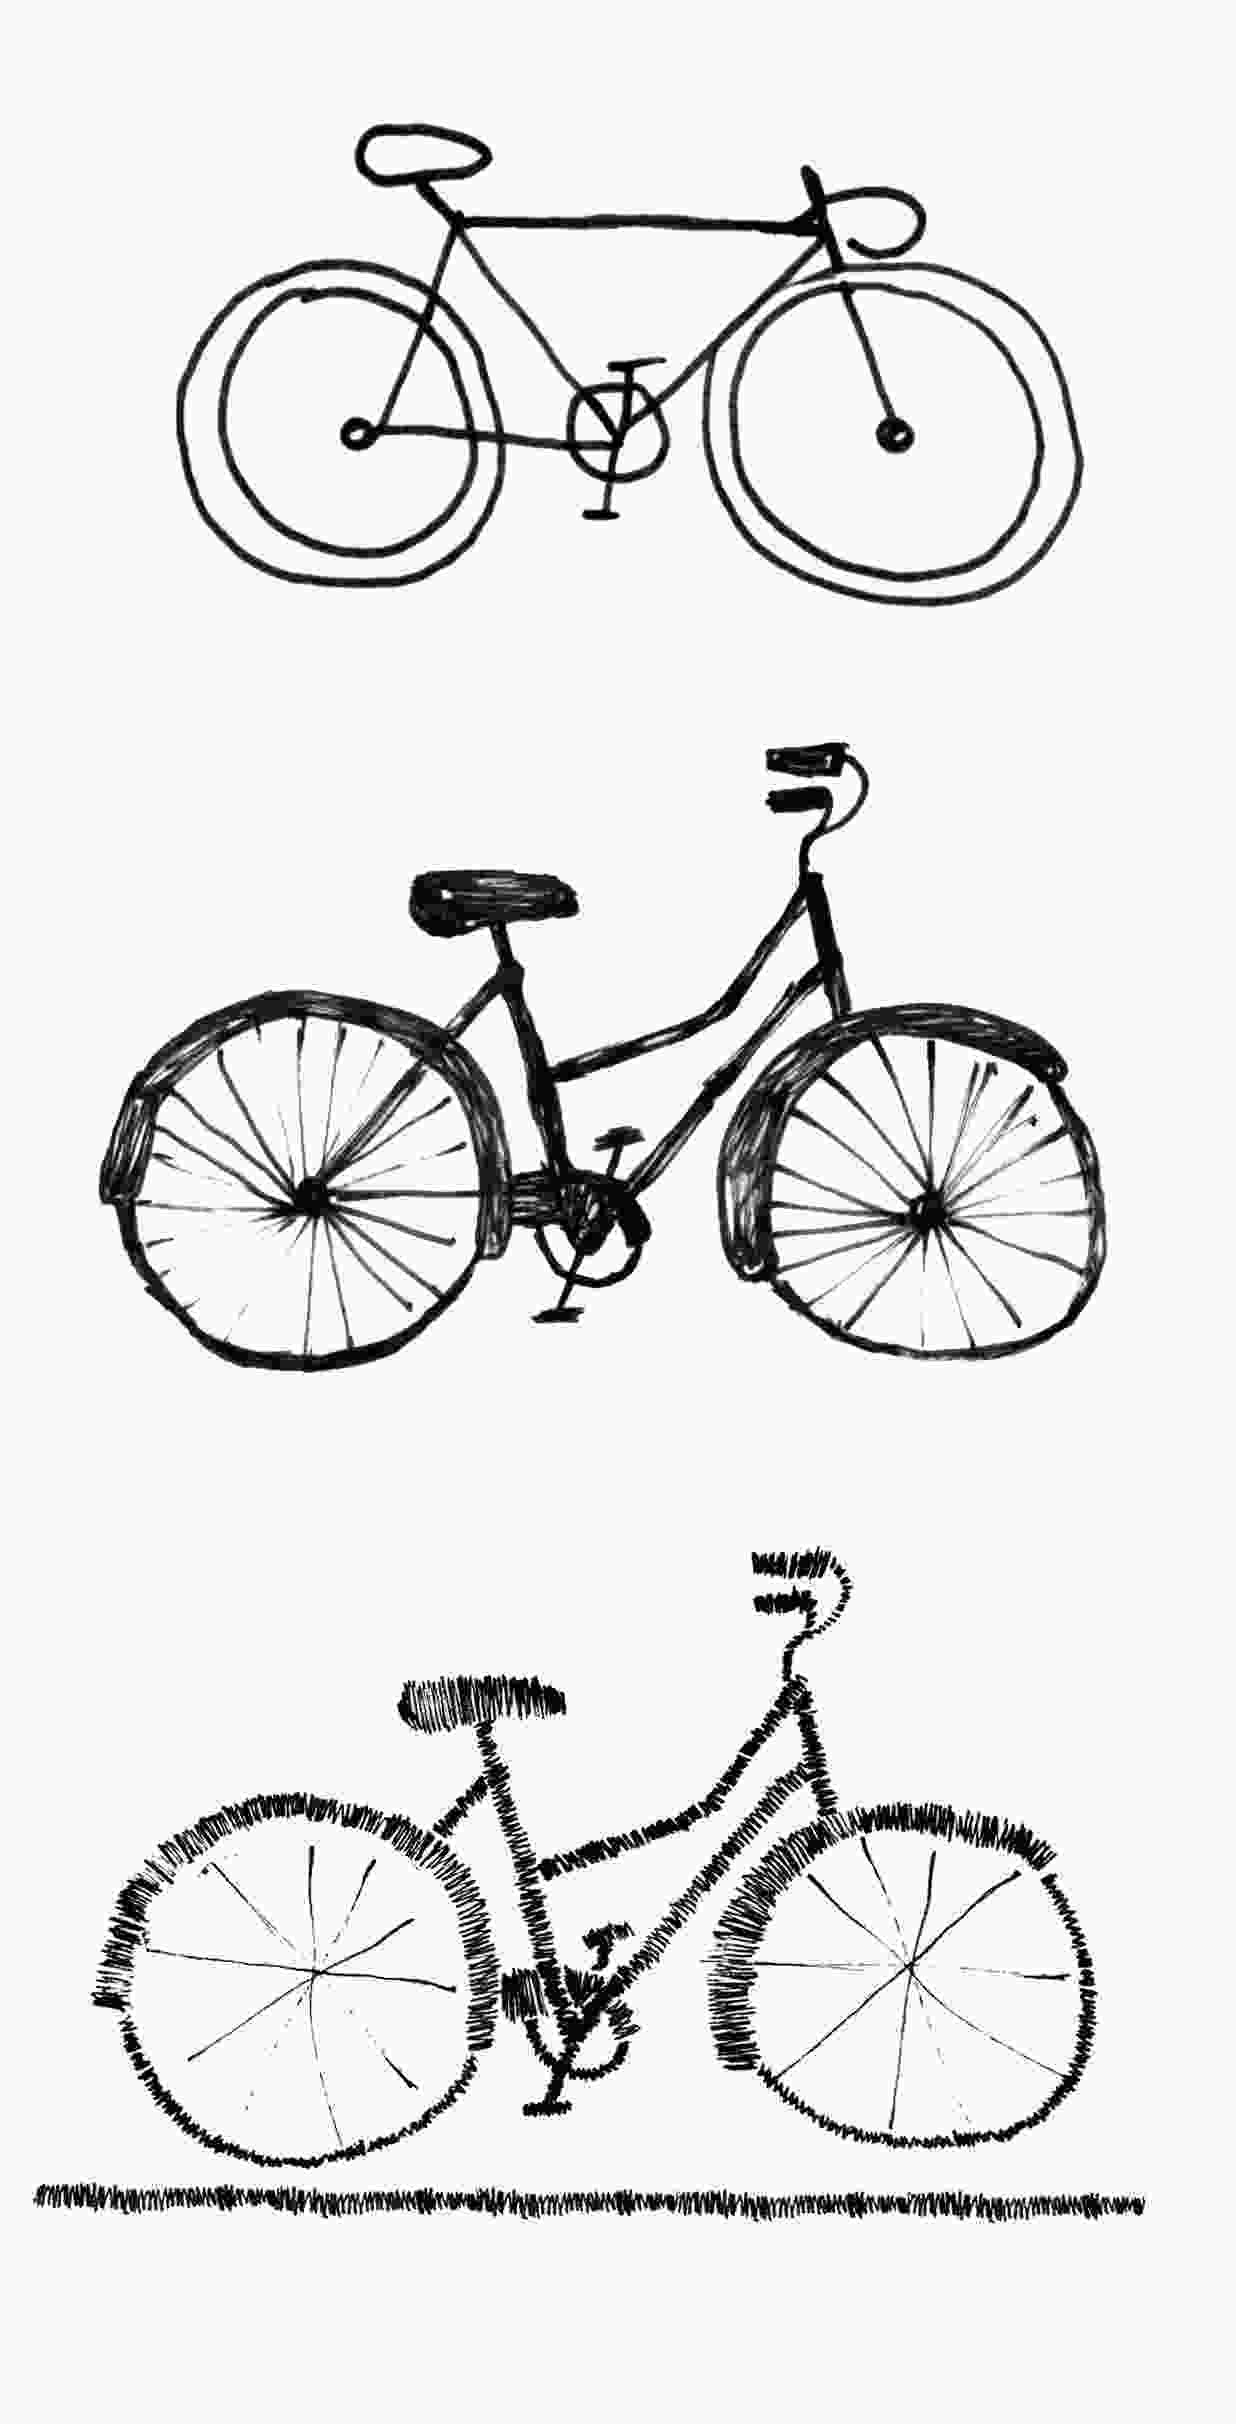 easy to draw bike bicycle sketches youd look sweet upon the seat in